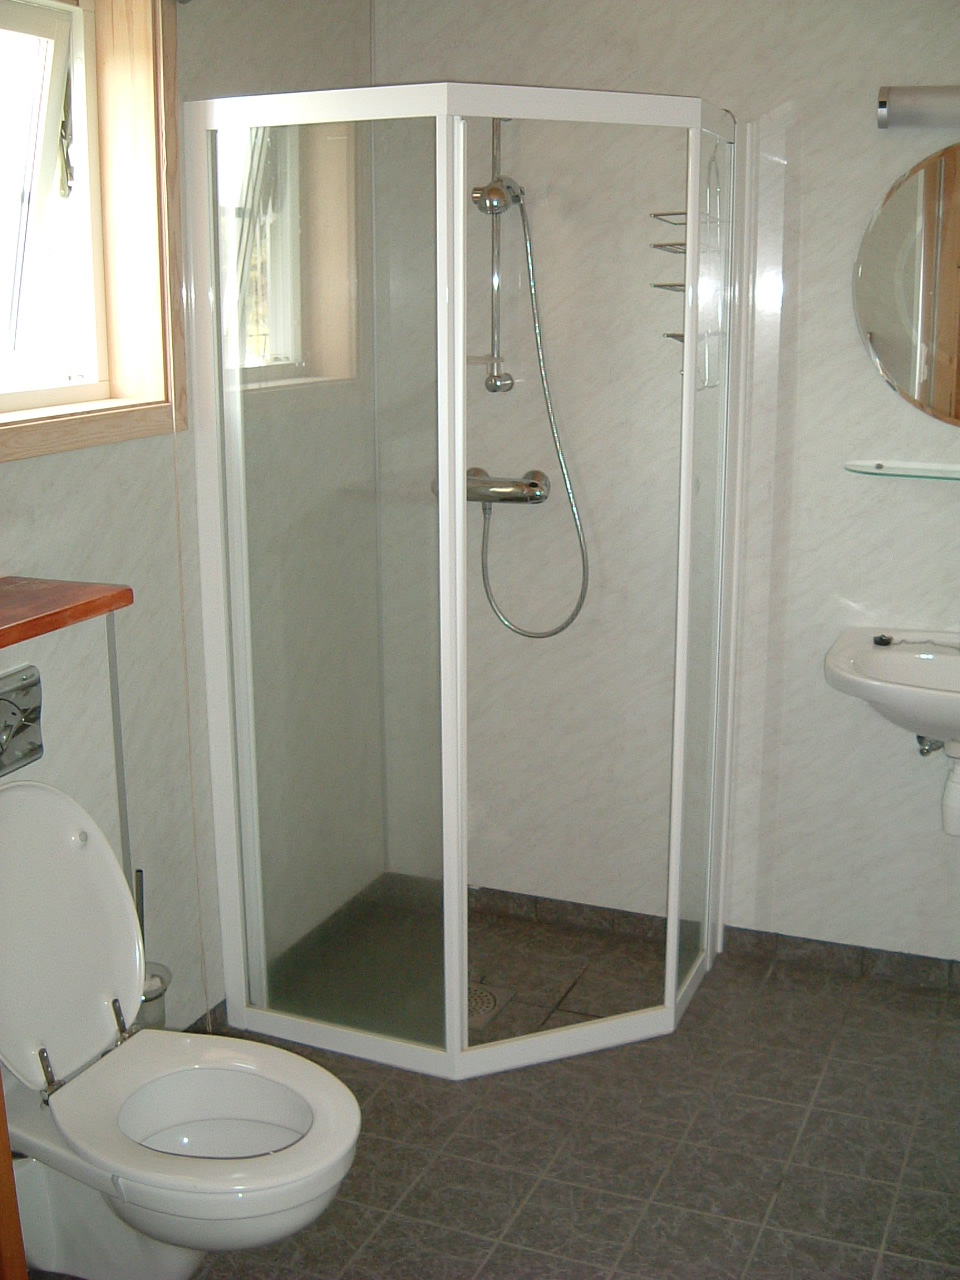 Showerroom groundfloor